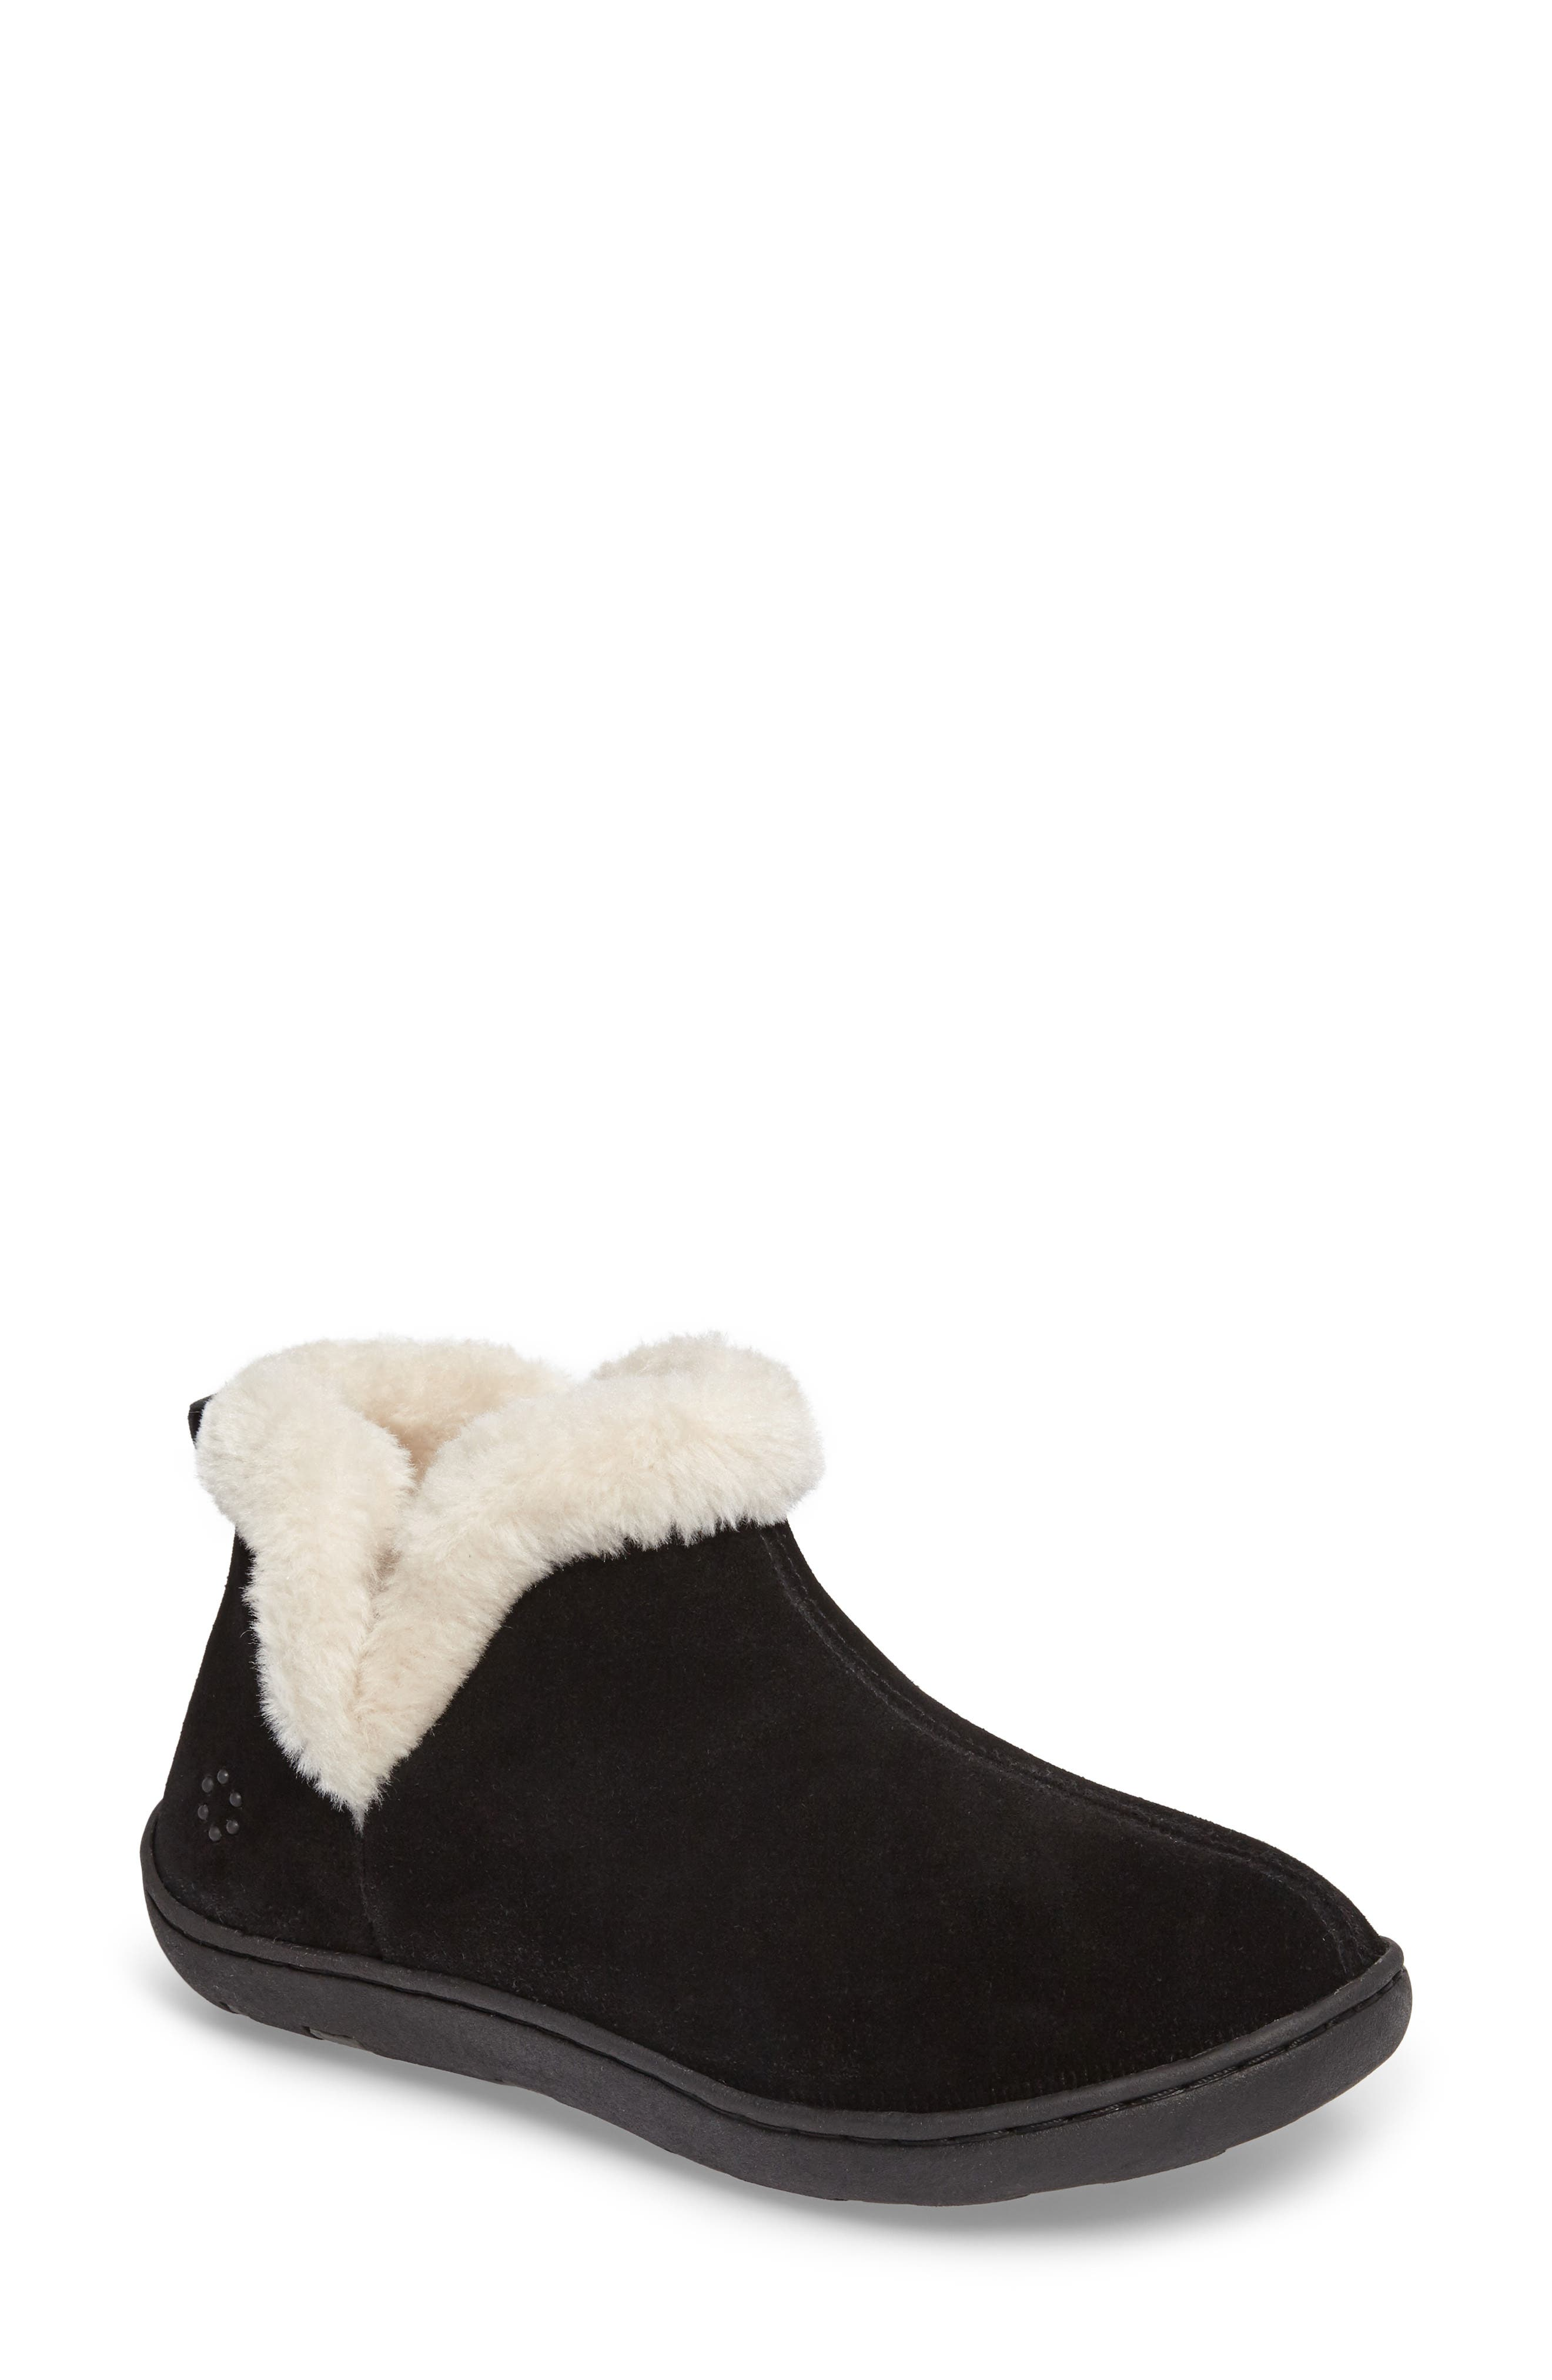 TEMPUR-PEDIC<SUP>®</SUP>, Vallery Bootie Slipper, Main thumbnail 1, color, BLACK SUEDE